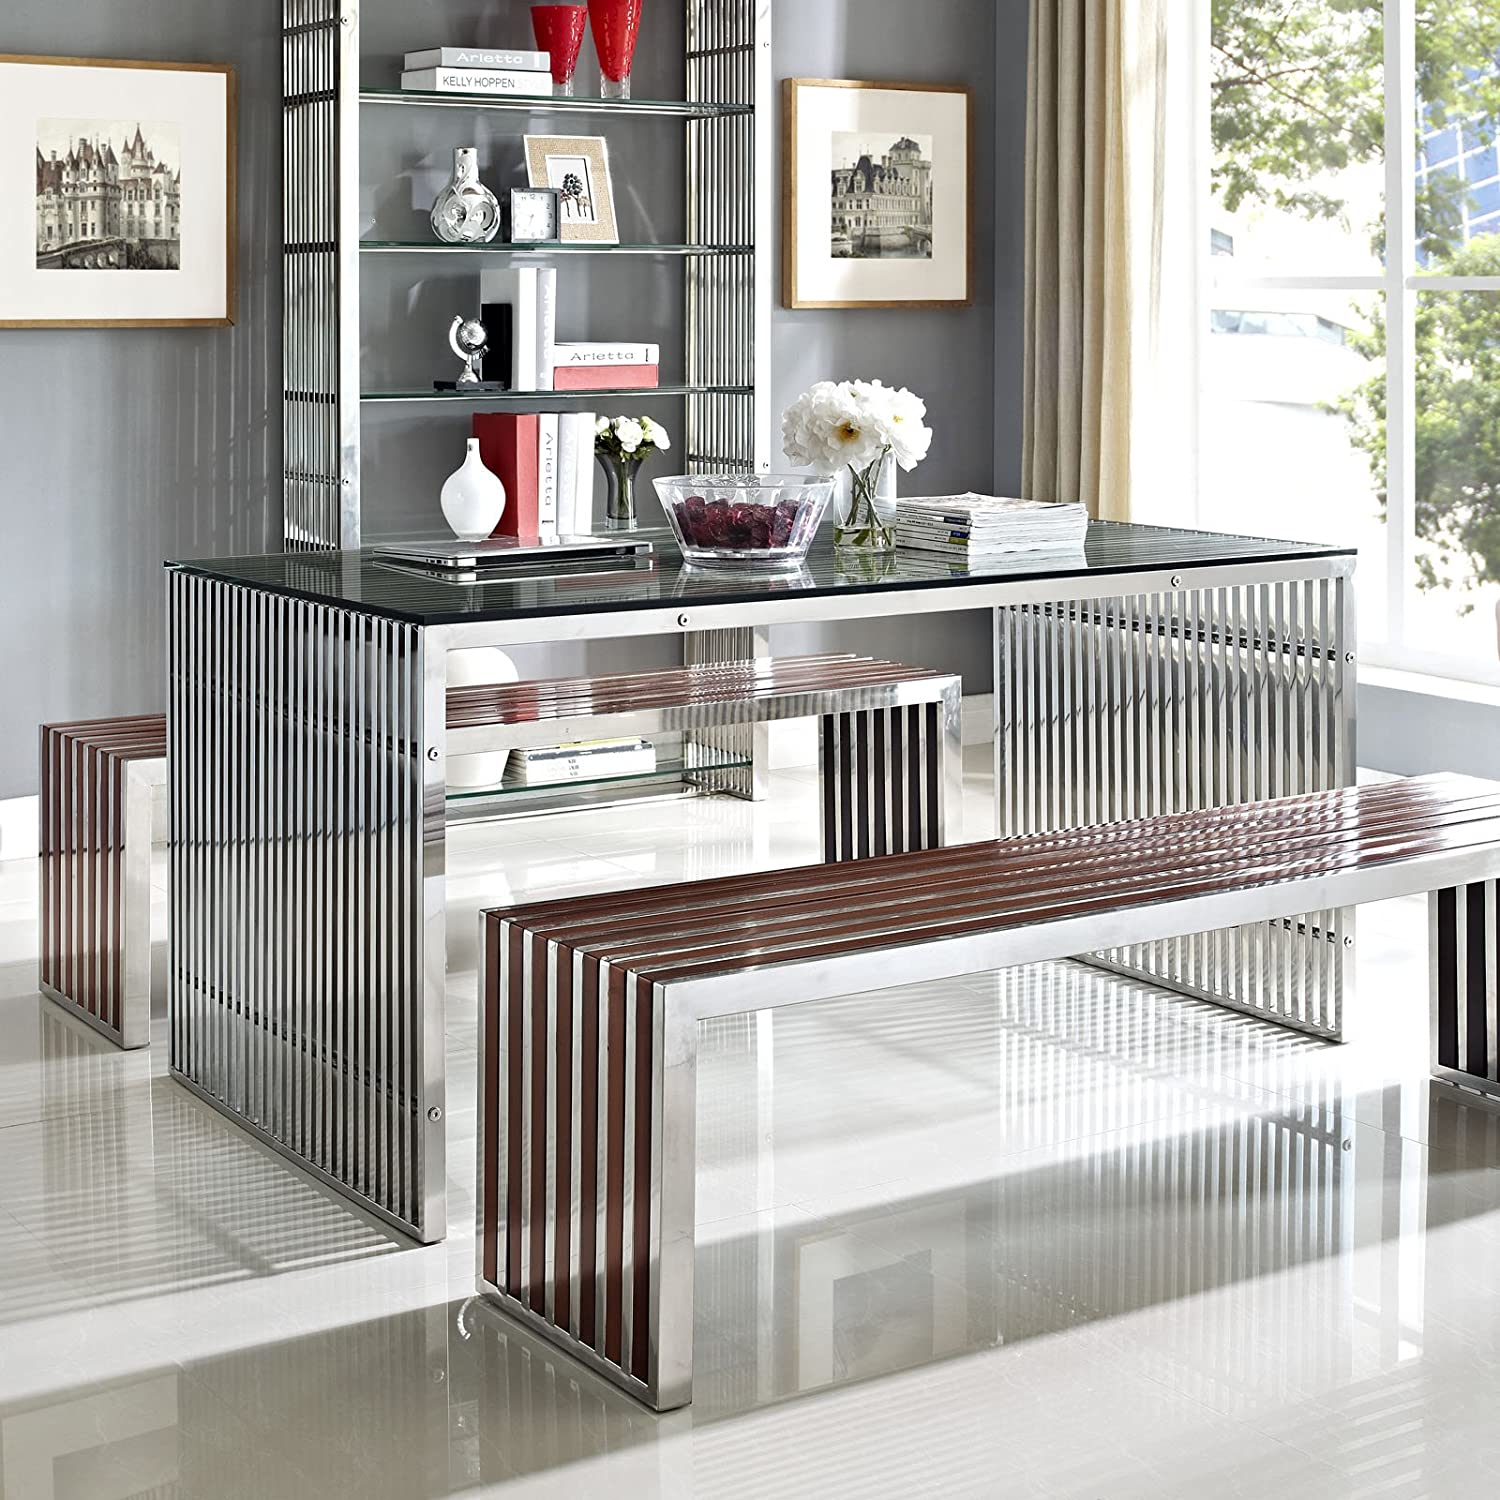 amazoncom modway gridiron stainless steel dining table in silver kitchen dining - Silver Dining Table